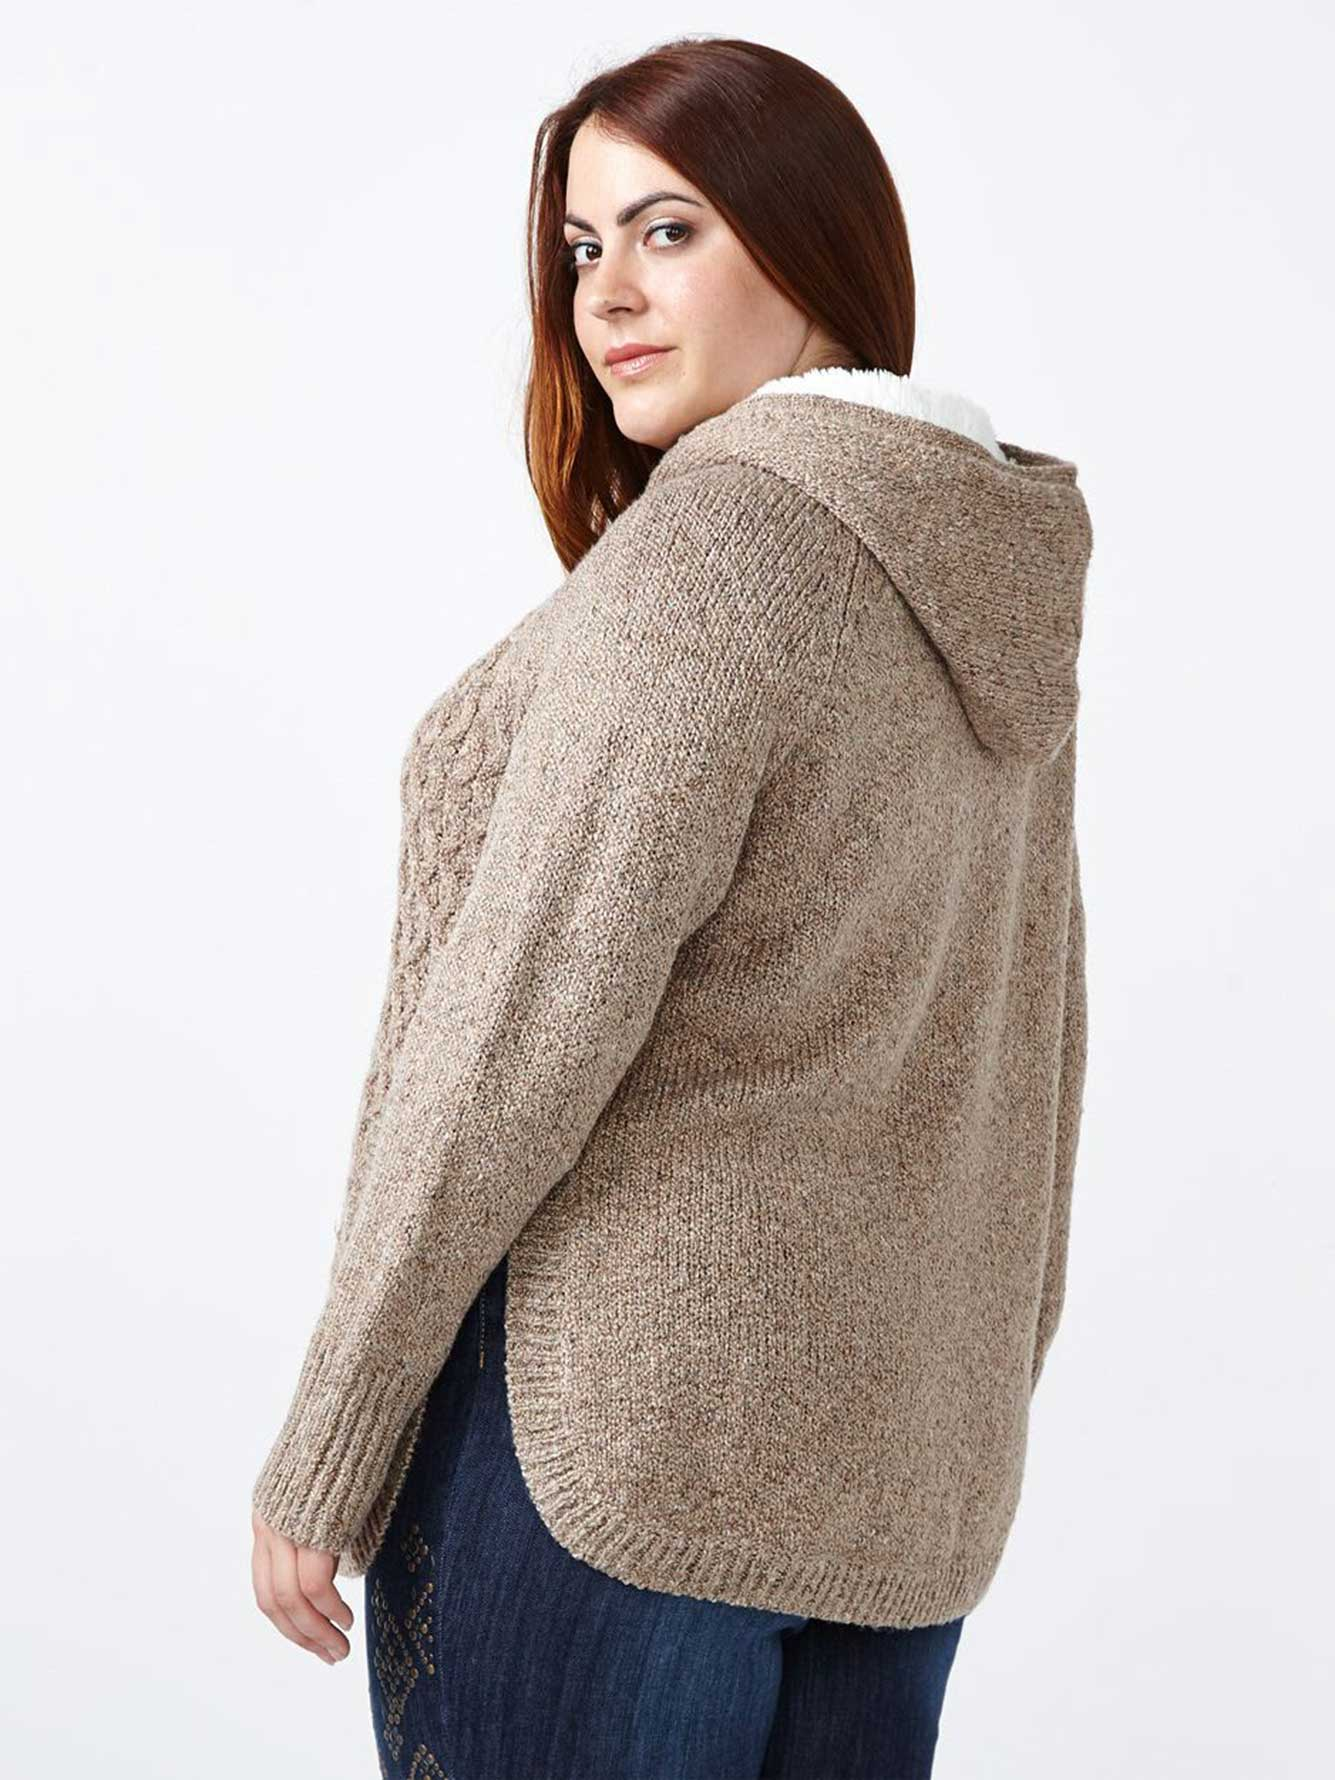 d/c JEANS Hooded Sweater with Sherpa Lining   Penningtons